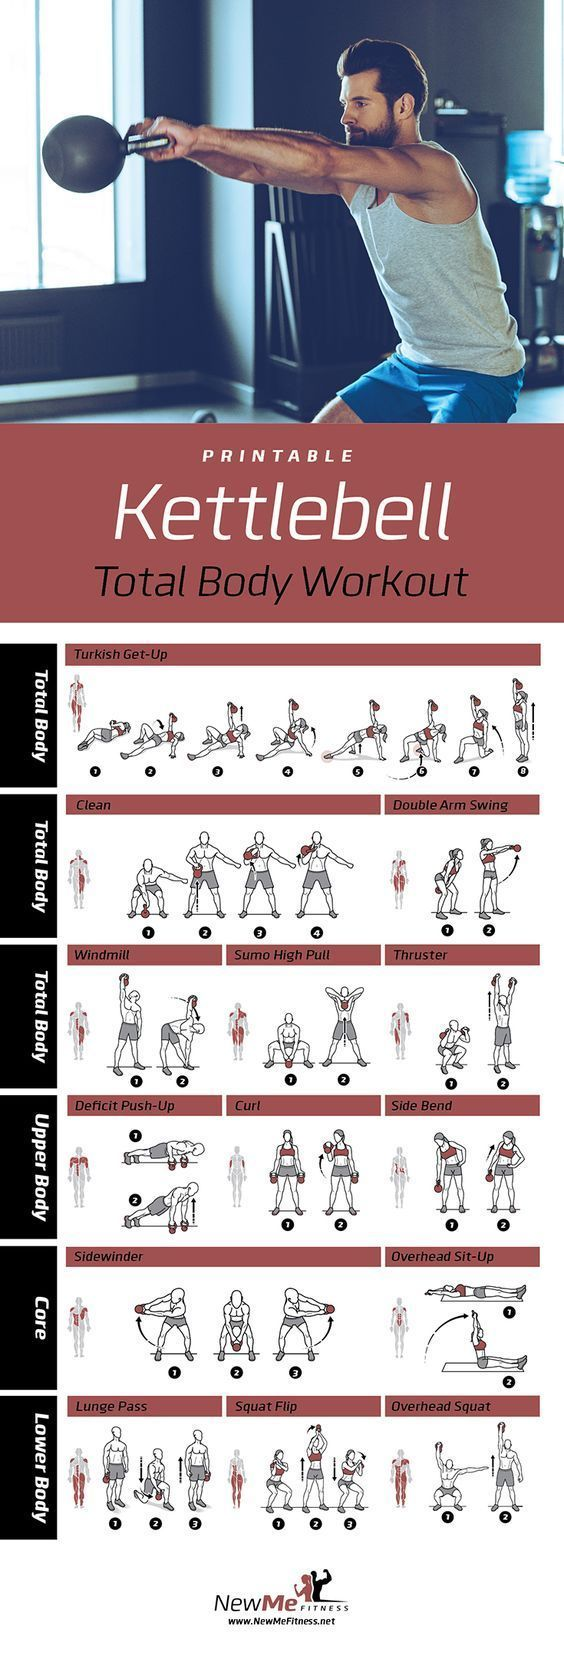 Kettlebell Workouts are the best. HIIT. Makes you stronger, fitter and burns cal…